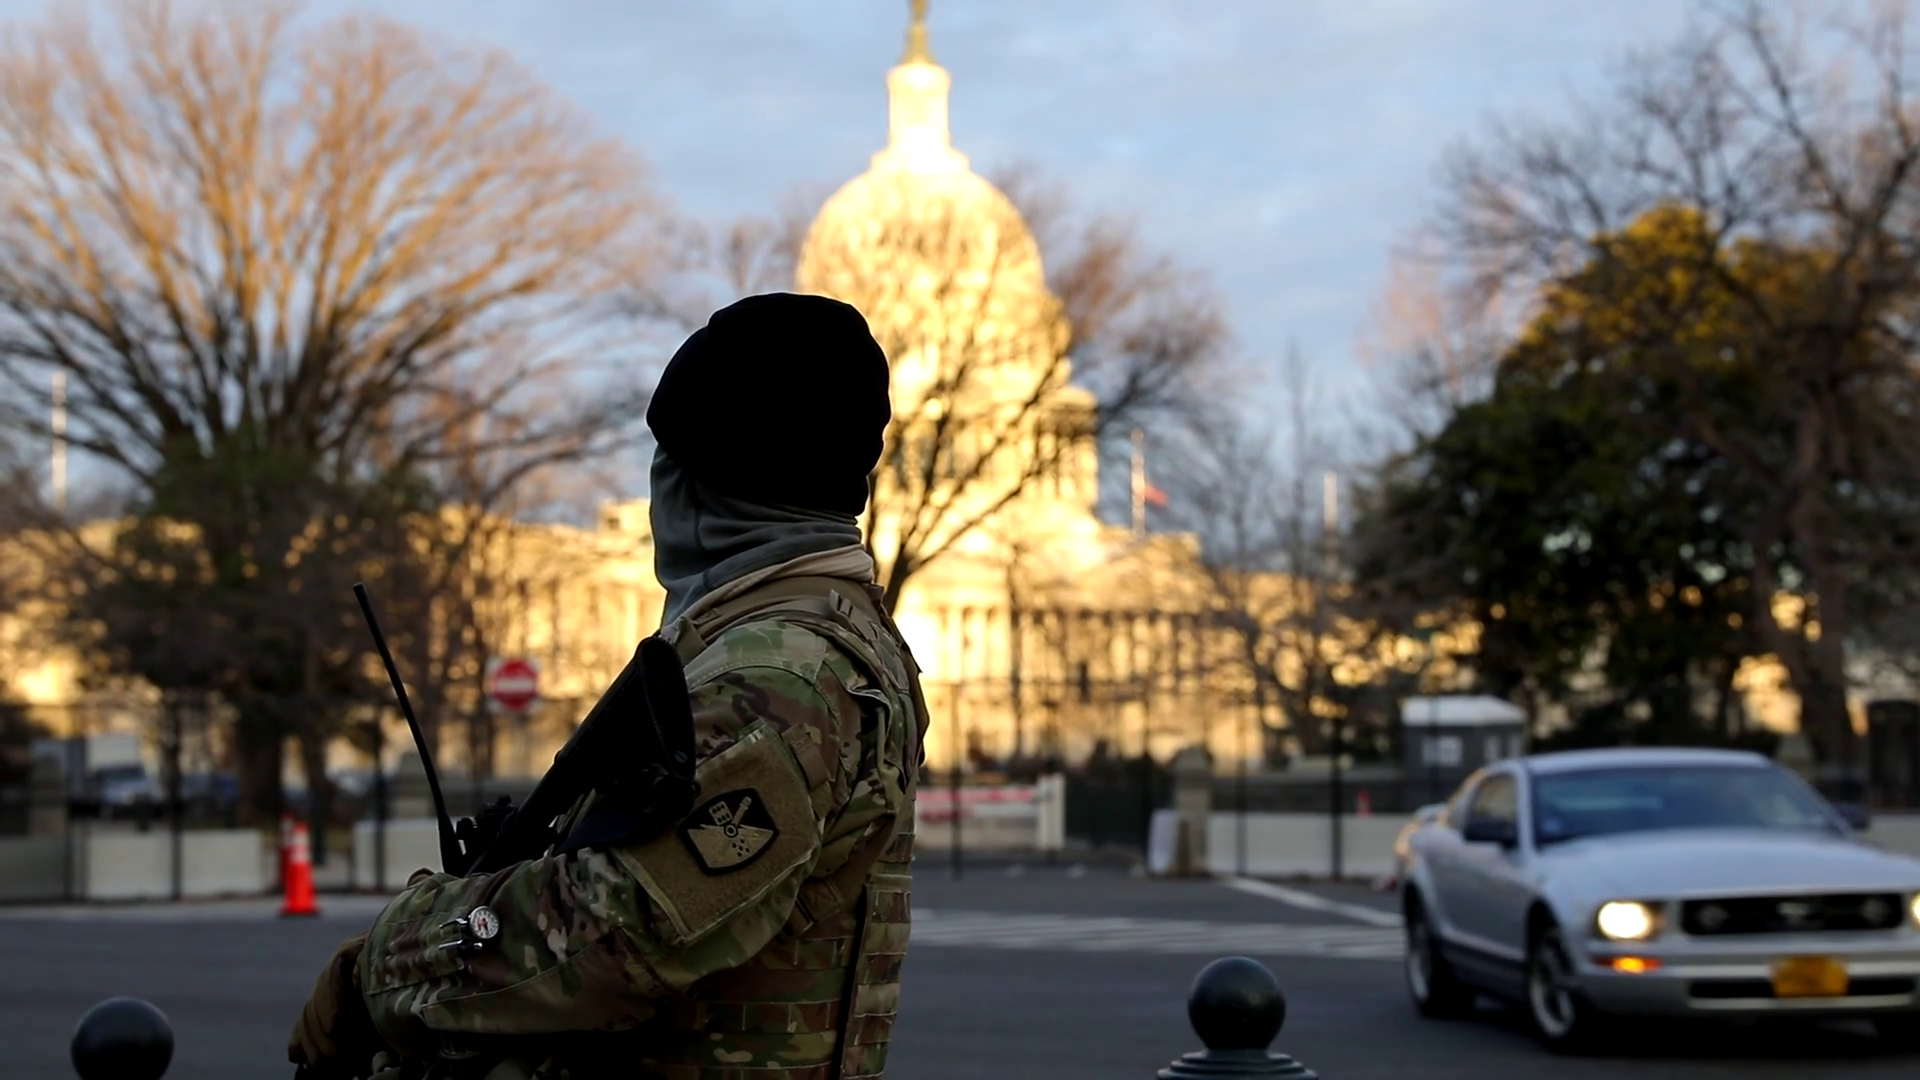 U.S. Soldiers with the Utah National Guard provide security throughout Washington, D.C., Jan. 16-18, 2021. At least 25,000 National Guard men and women have been authorized to conduct security, communication and logistical missions in support of federal and District authorities leading up and through the 59th Presidential Inauguration. (U.S. Army National Guard Photo by Sgt. Jordan Hack)